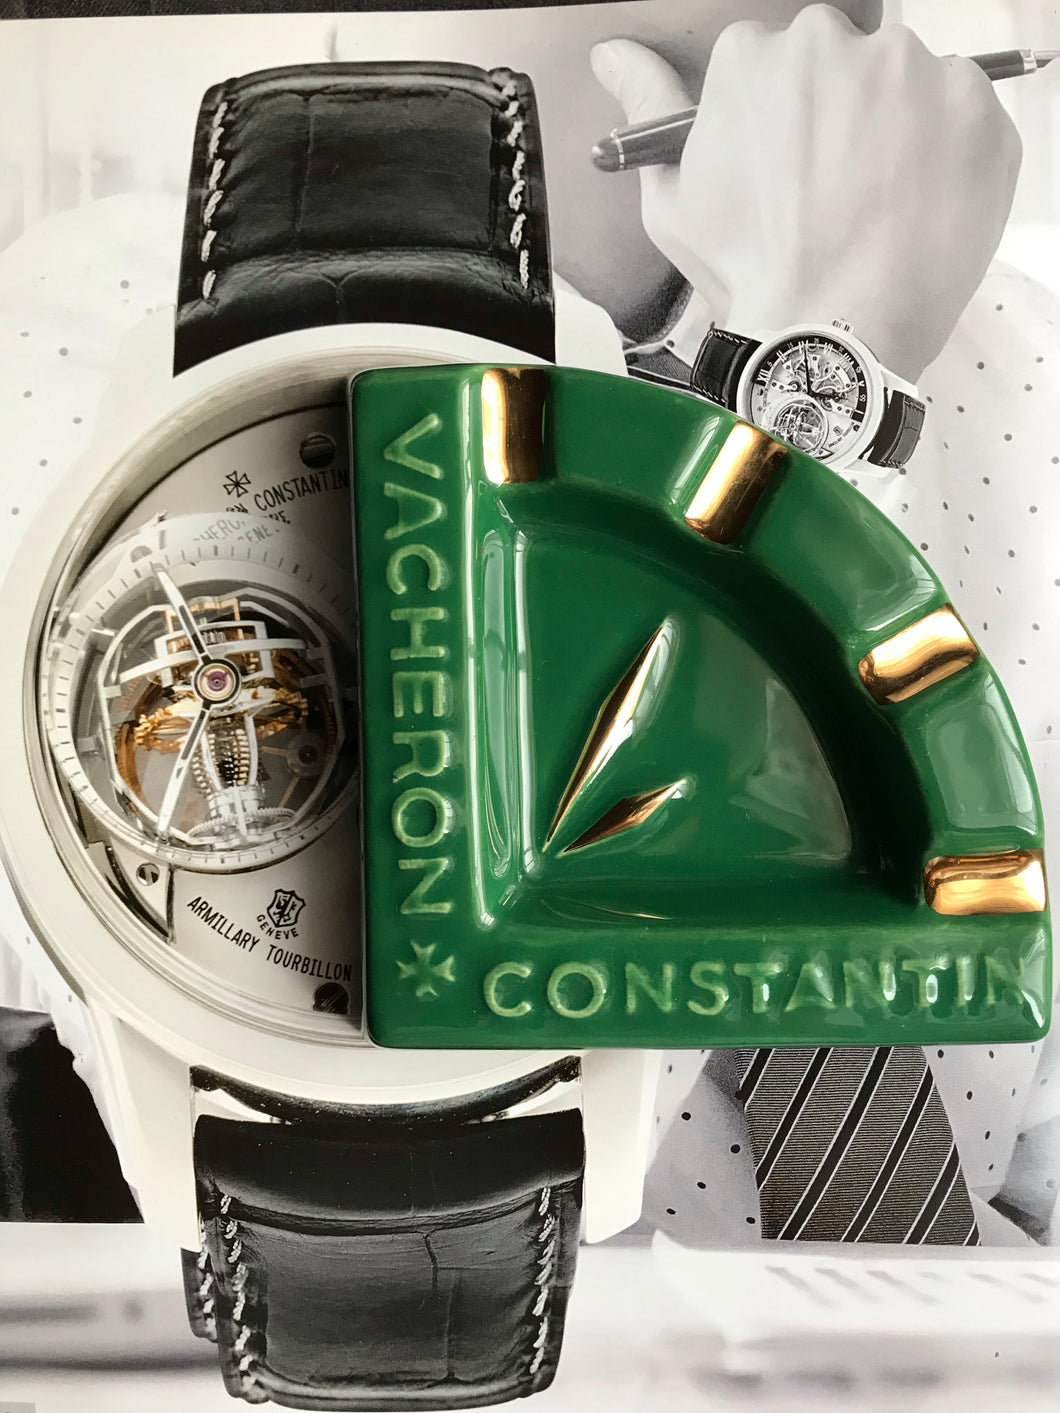 Vacheron Constantin Vintage Ashtray - Green